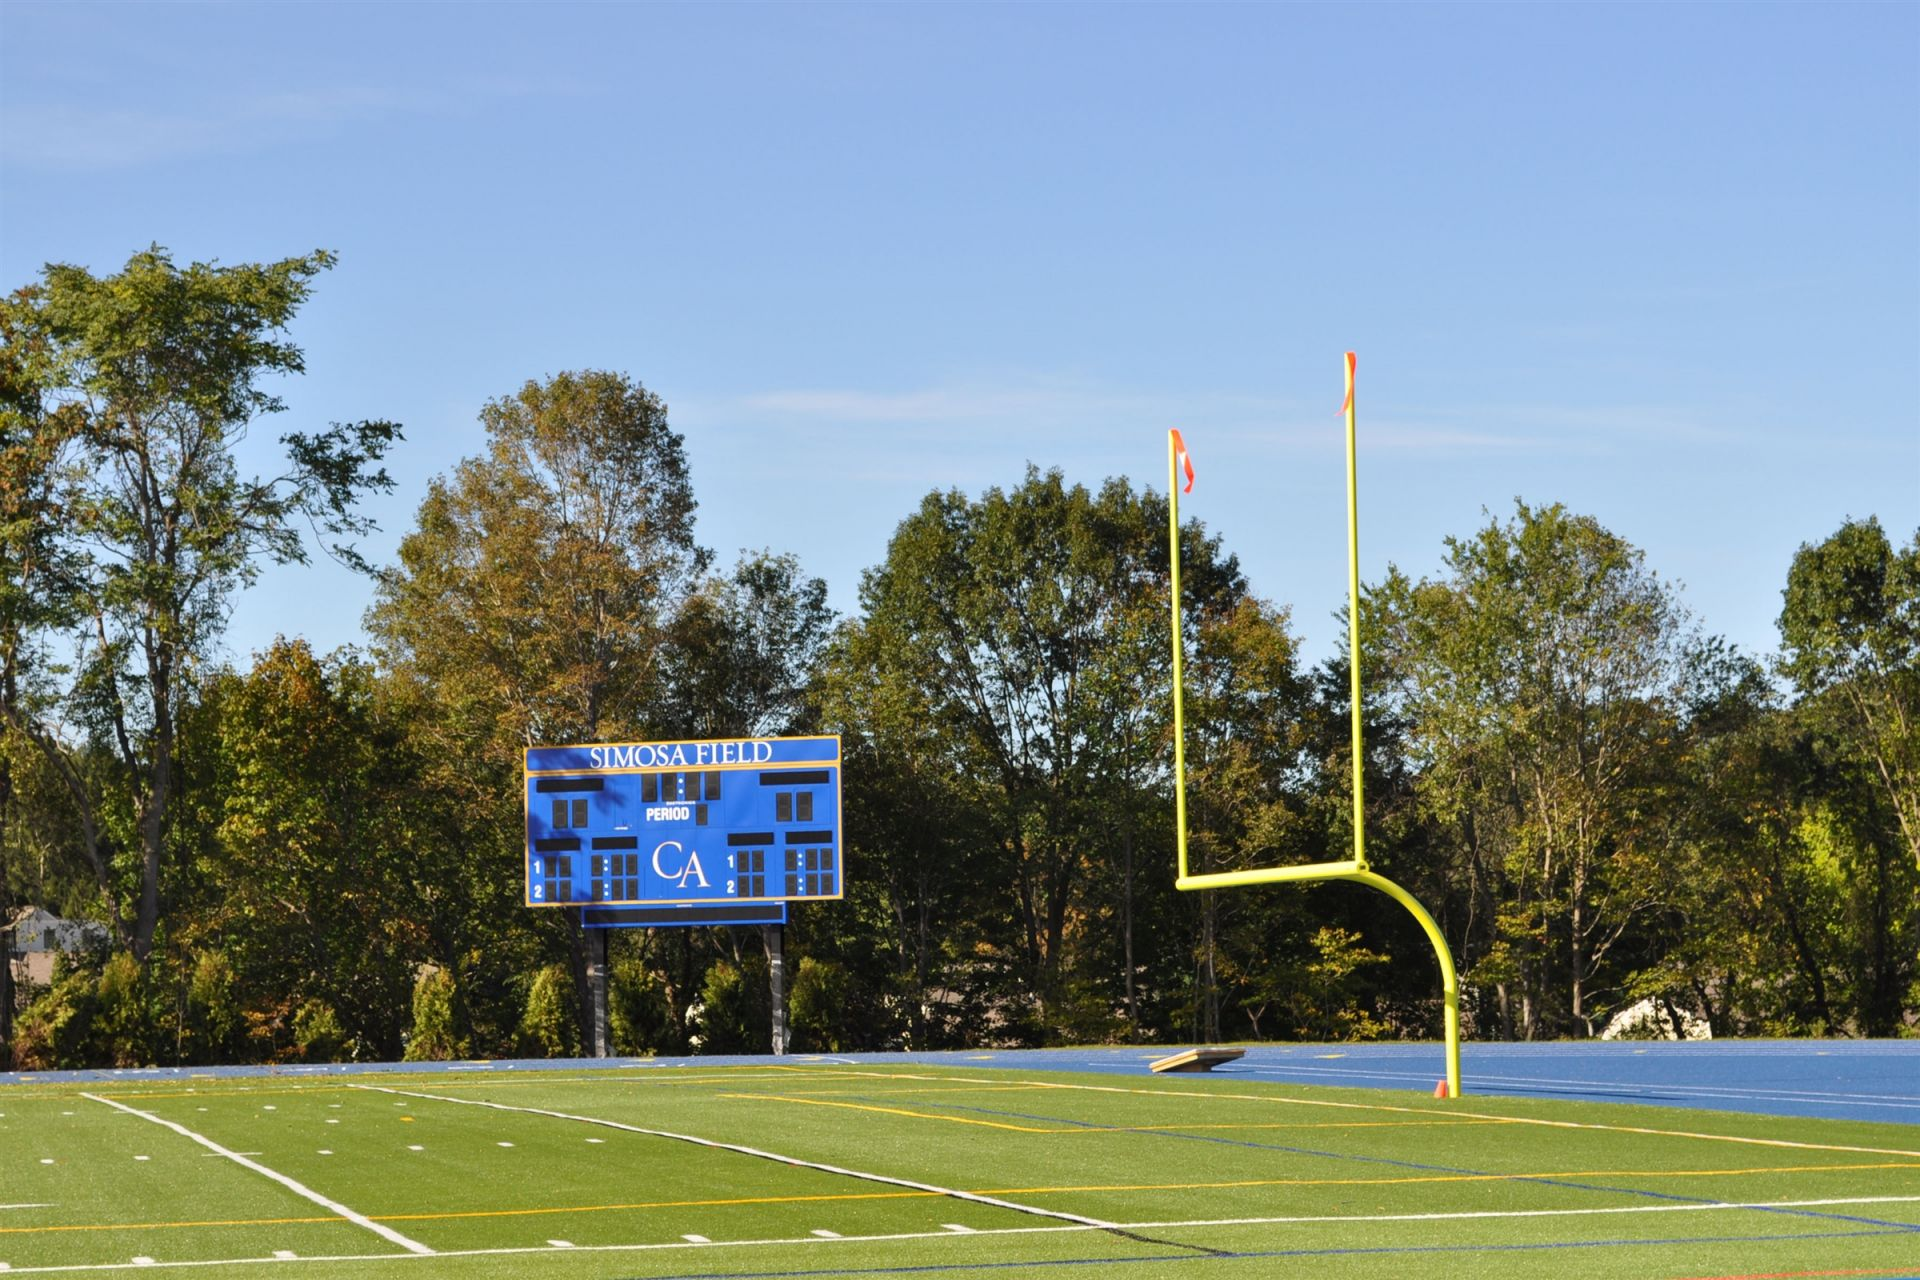 Simosa Field is a state-of-the-art turf field accommodating football, boys and girls soccer, field hockey, boys and girls lacrosse, and track. The turf allows for lower maintenance costs, increased playability, fewer injuries, and saves water.